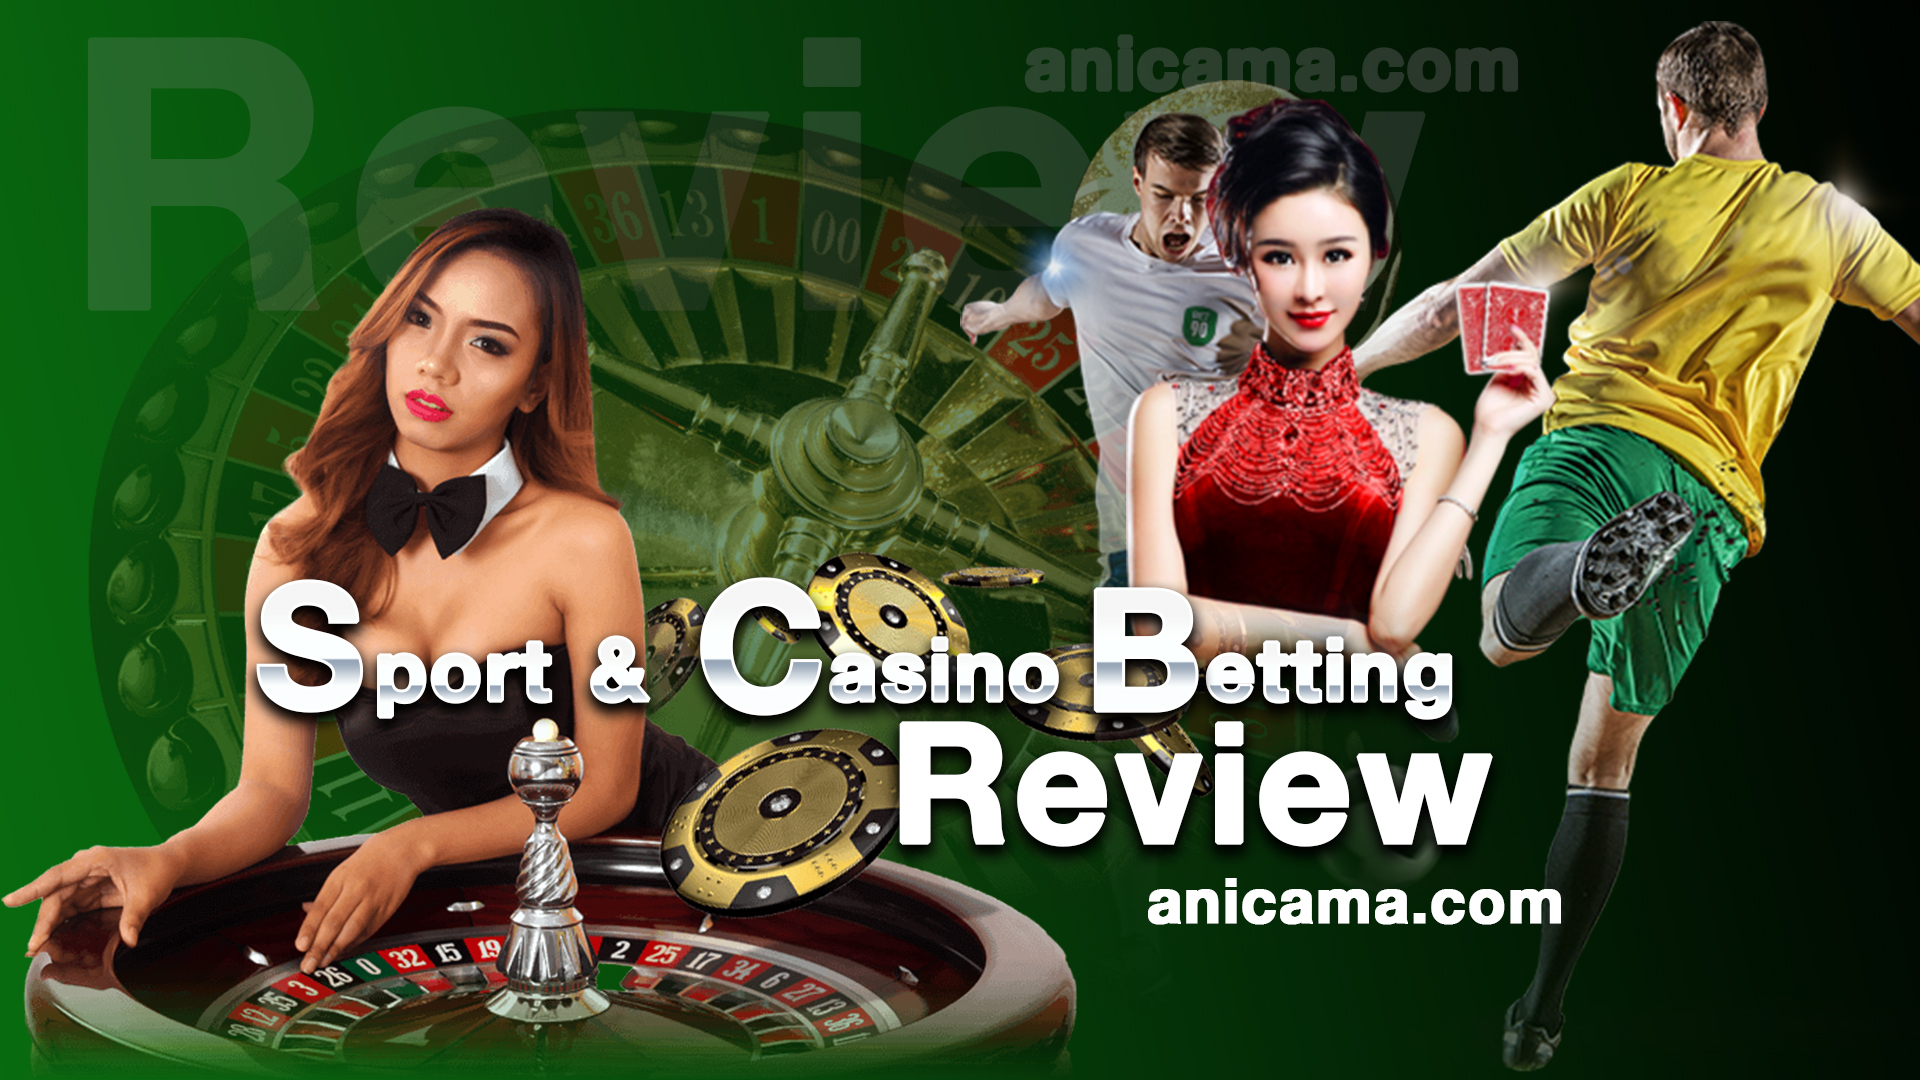 Sport & Casino betting Review